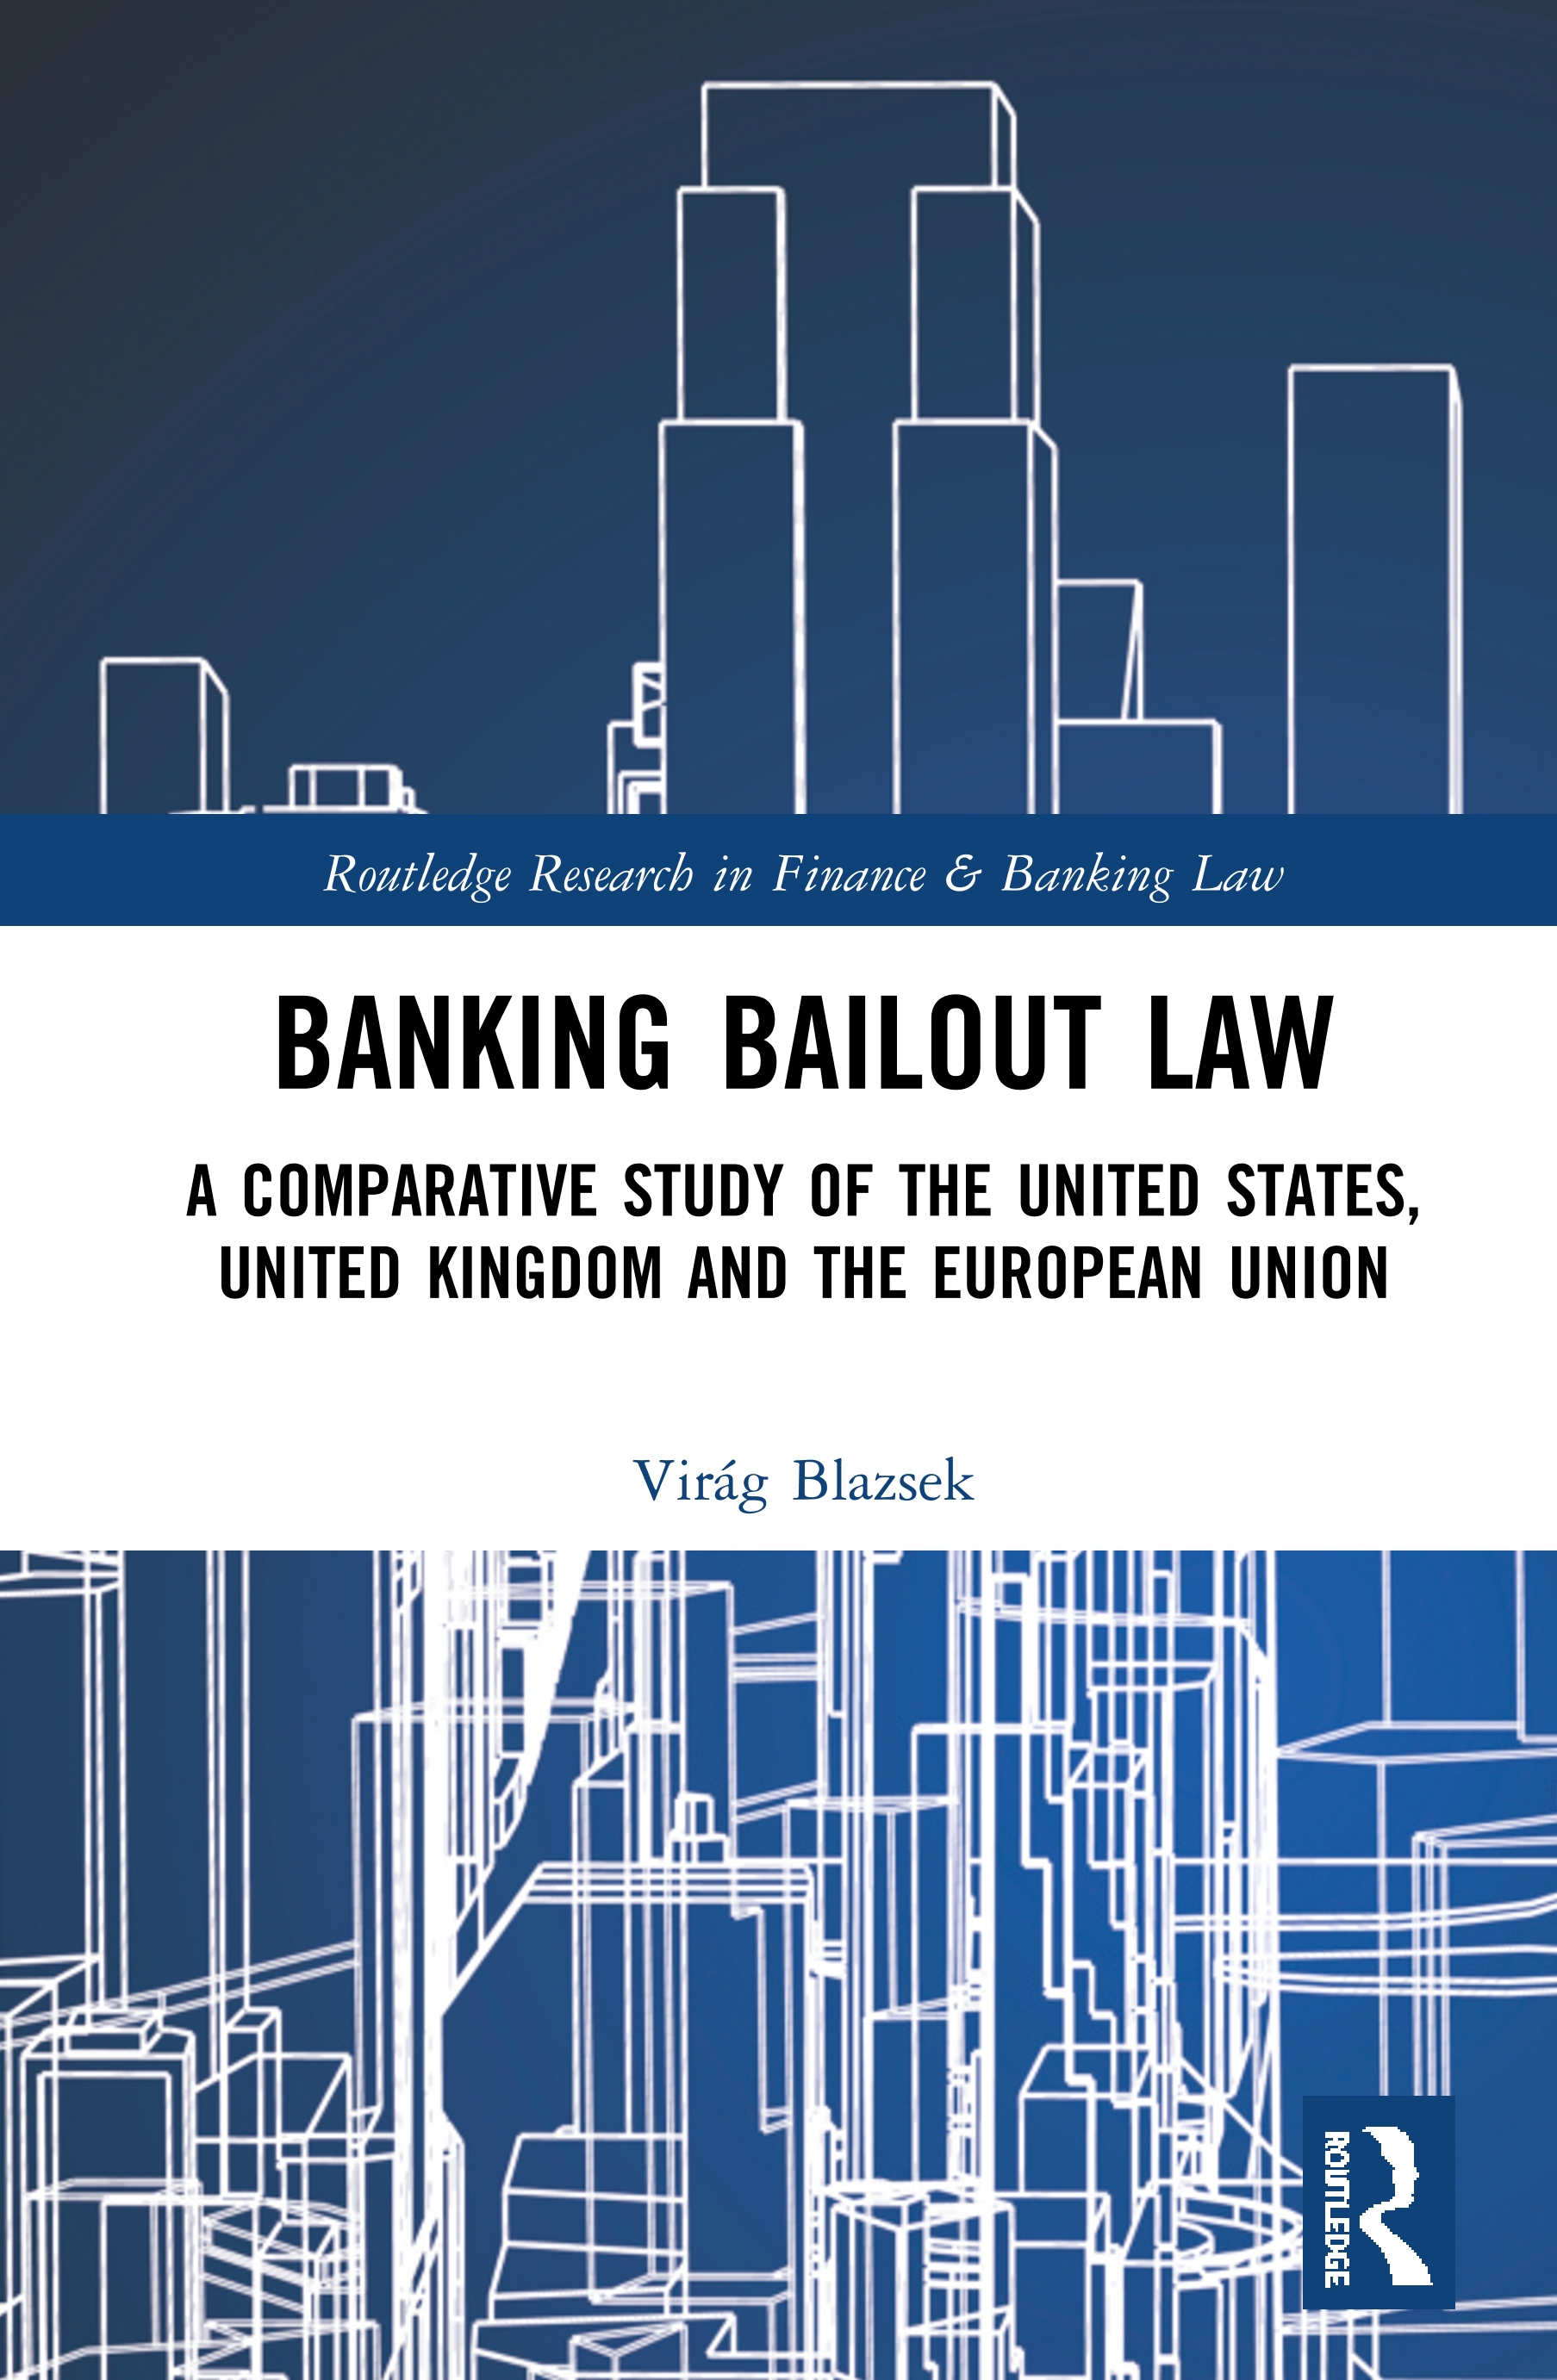 Virág Blazsek Banking Bailout Law: A Comparative Study of the United States, United Kingdom and the European Union